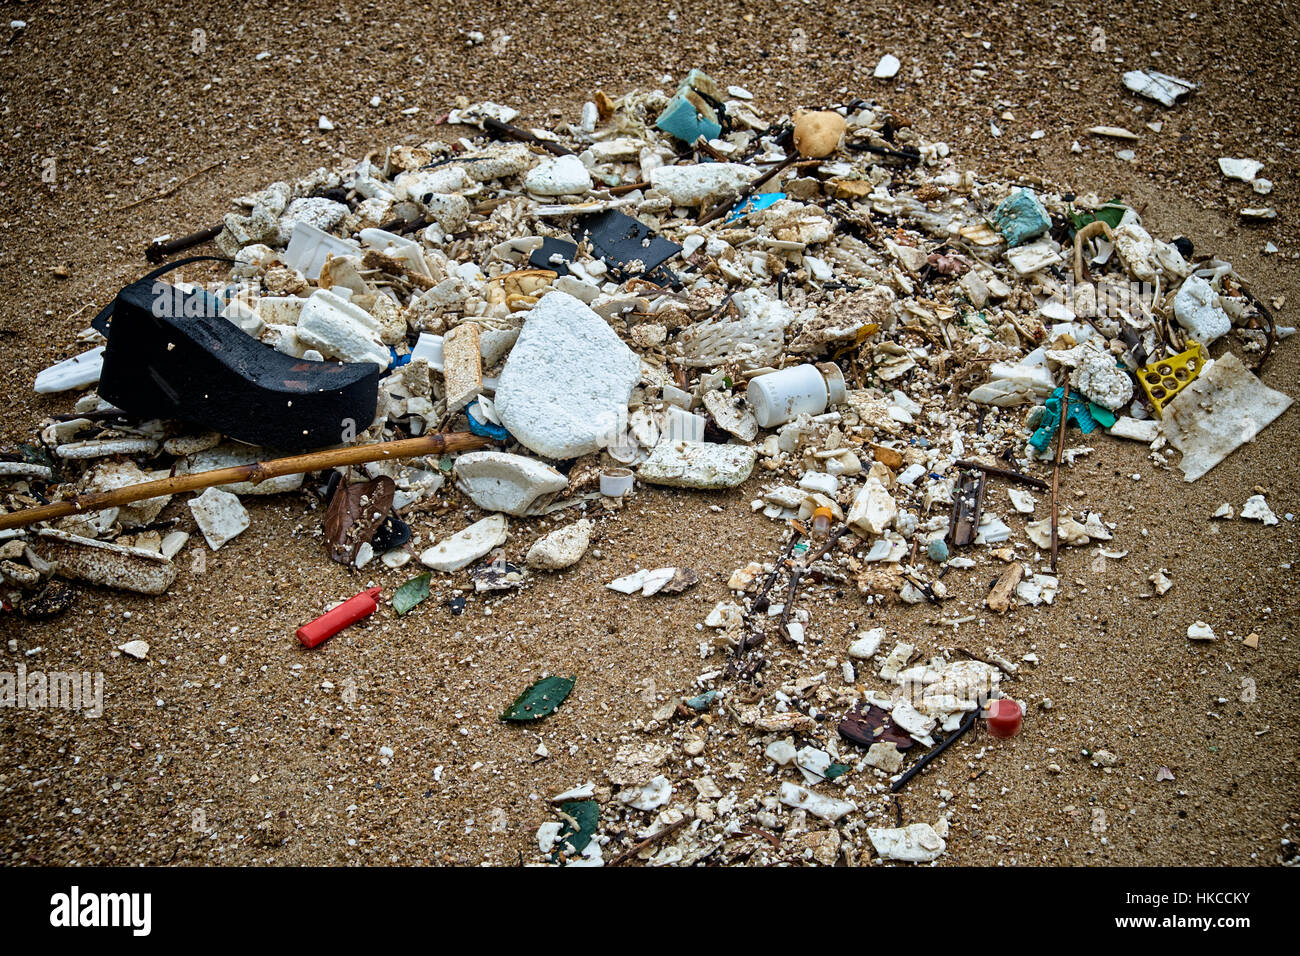 HONG KONG - JULY 18: After a storm, a mix of polystyrene, PET and plastic artifacts litter the shores of Hung Shing - Stock Image